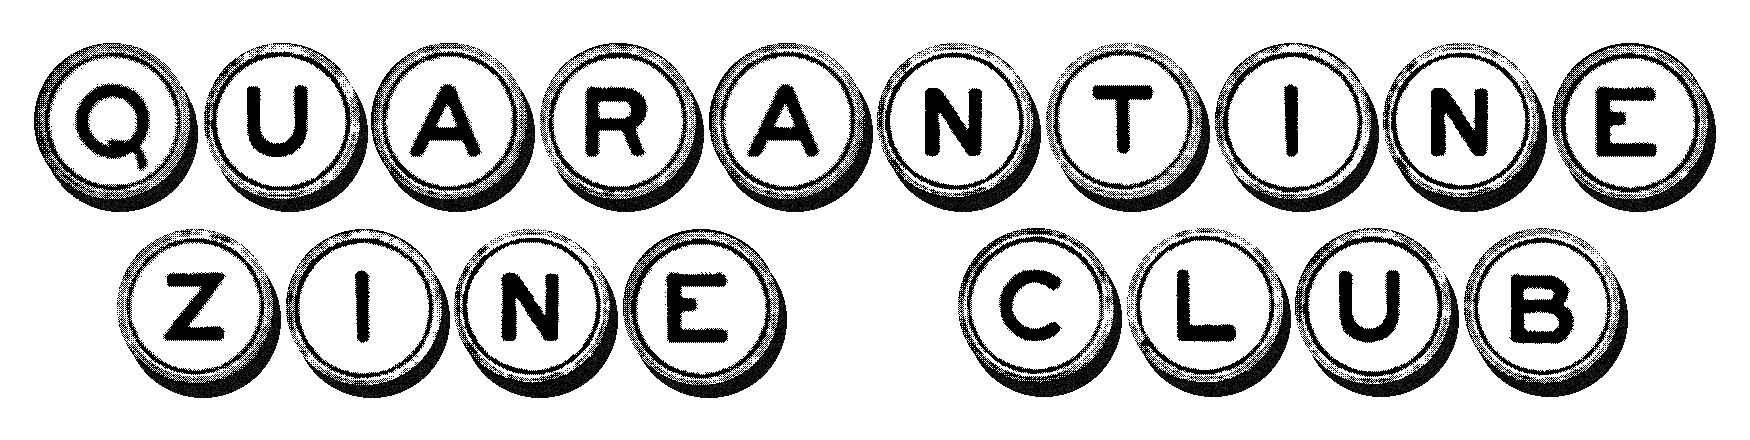 The header image of the Quarantine Zine Club website. Each letter is a black and white representation of a typewriter key.